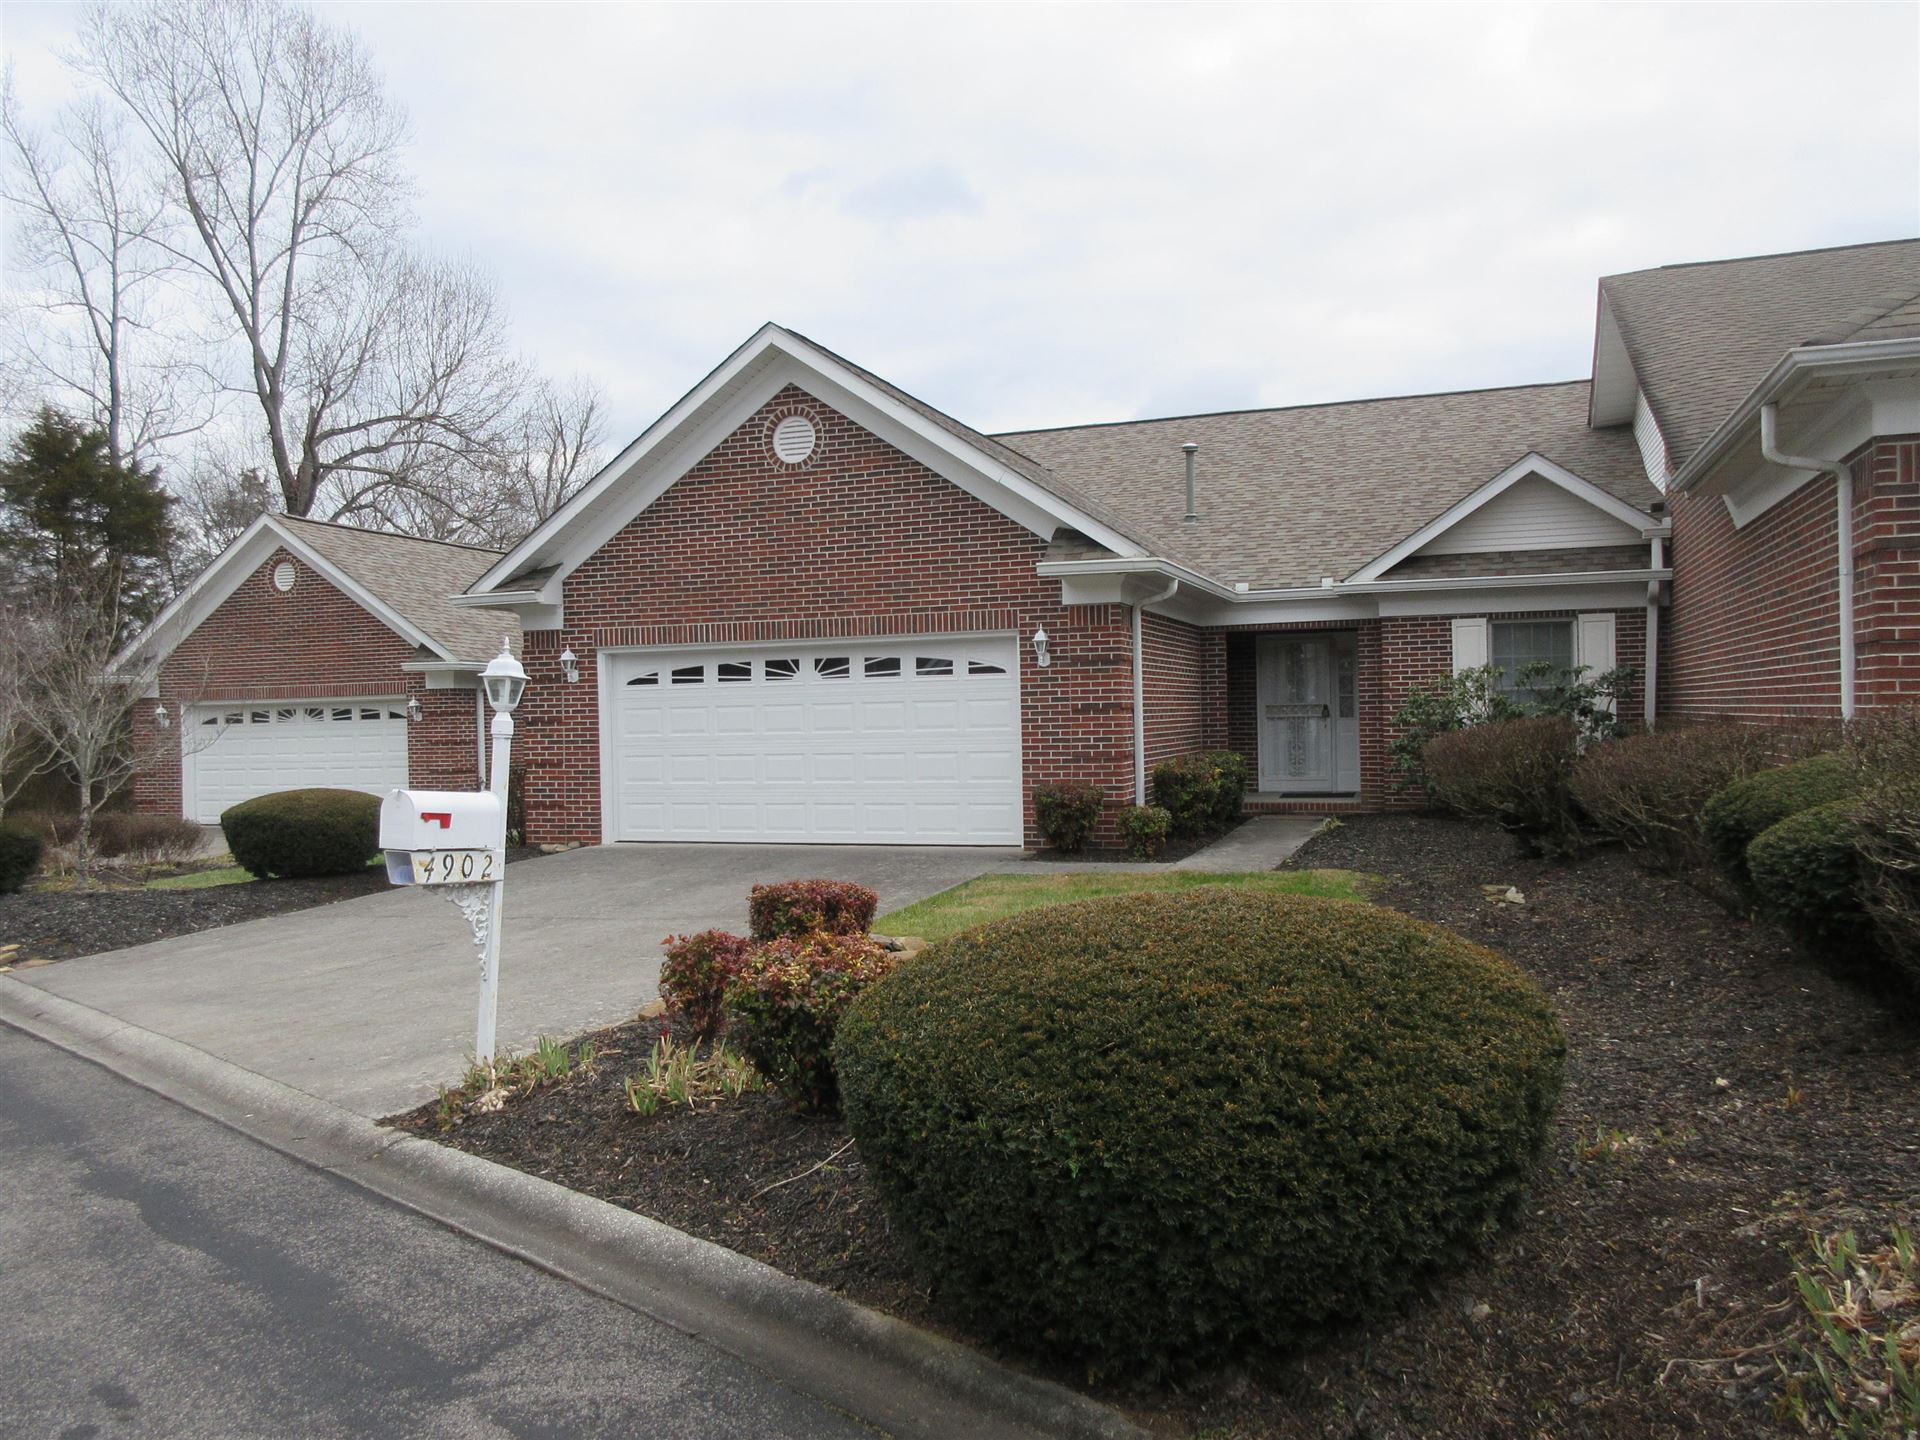 Photo of 4902 Endecott Way, Knoxville, TN 37918 (MLS # 1140333)